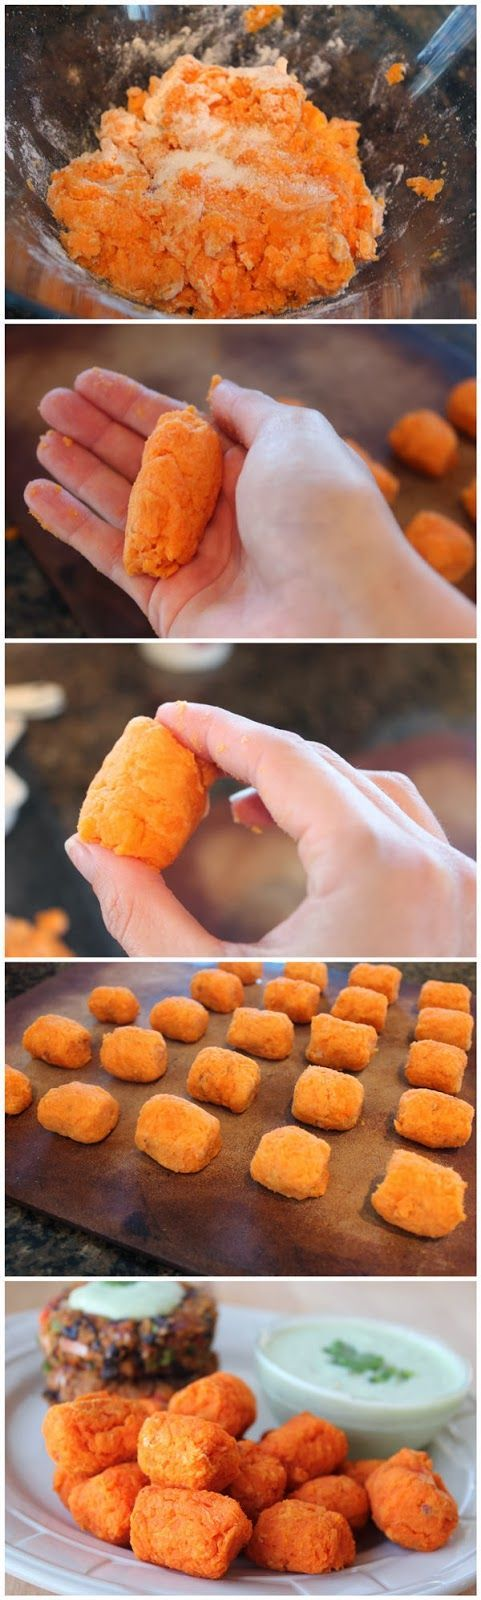 Homemade Baked Sweet Potato Tots (change rice flour for almond flour for Whole 30)